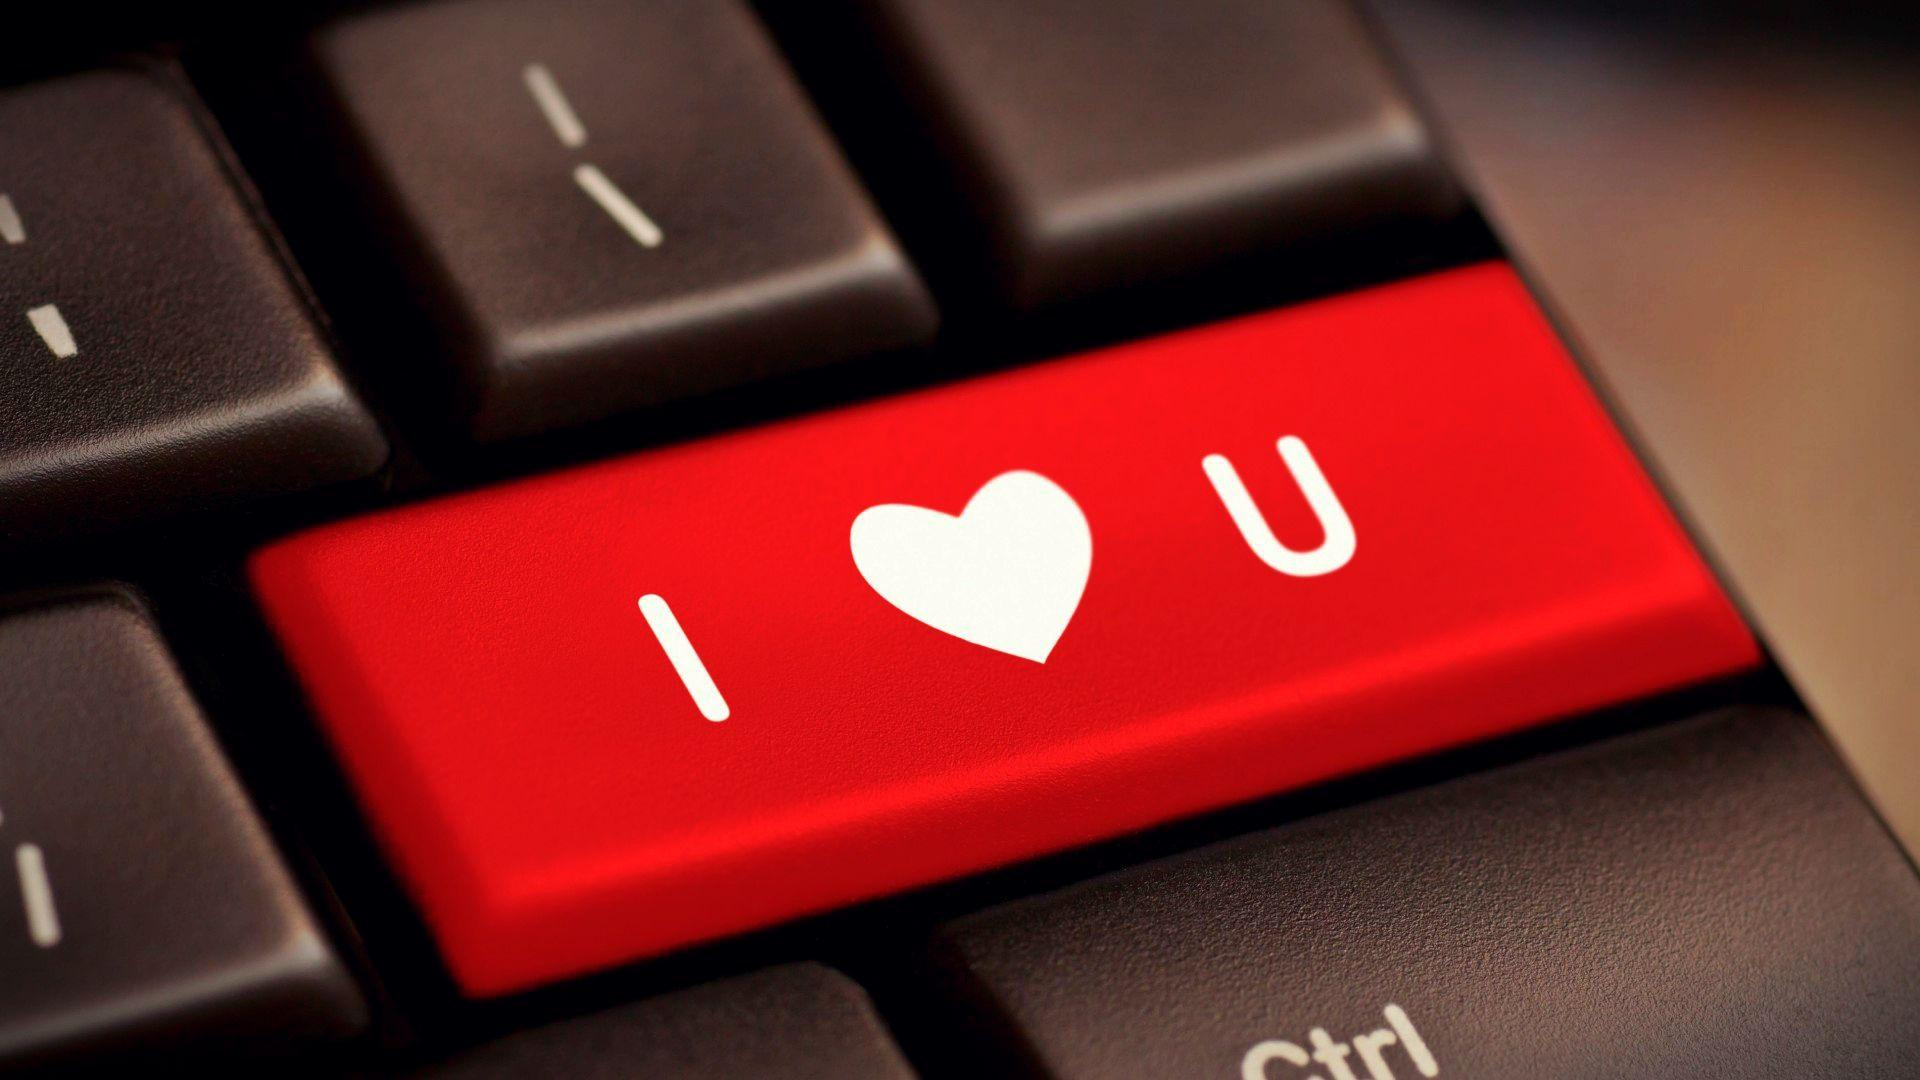 Love You HD Wallpapers